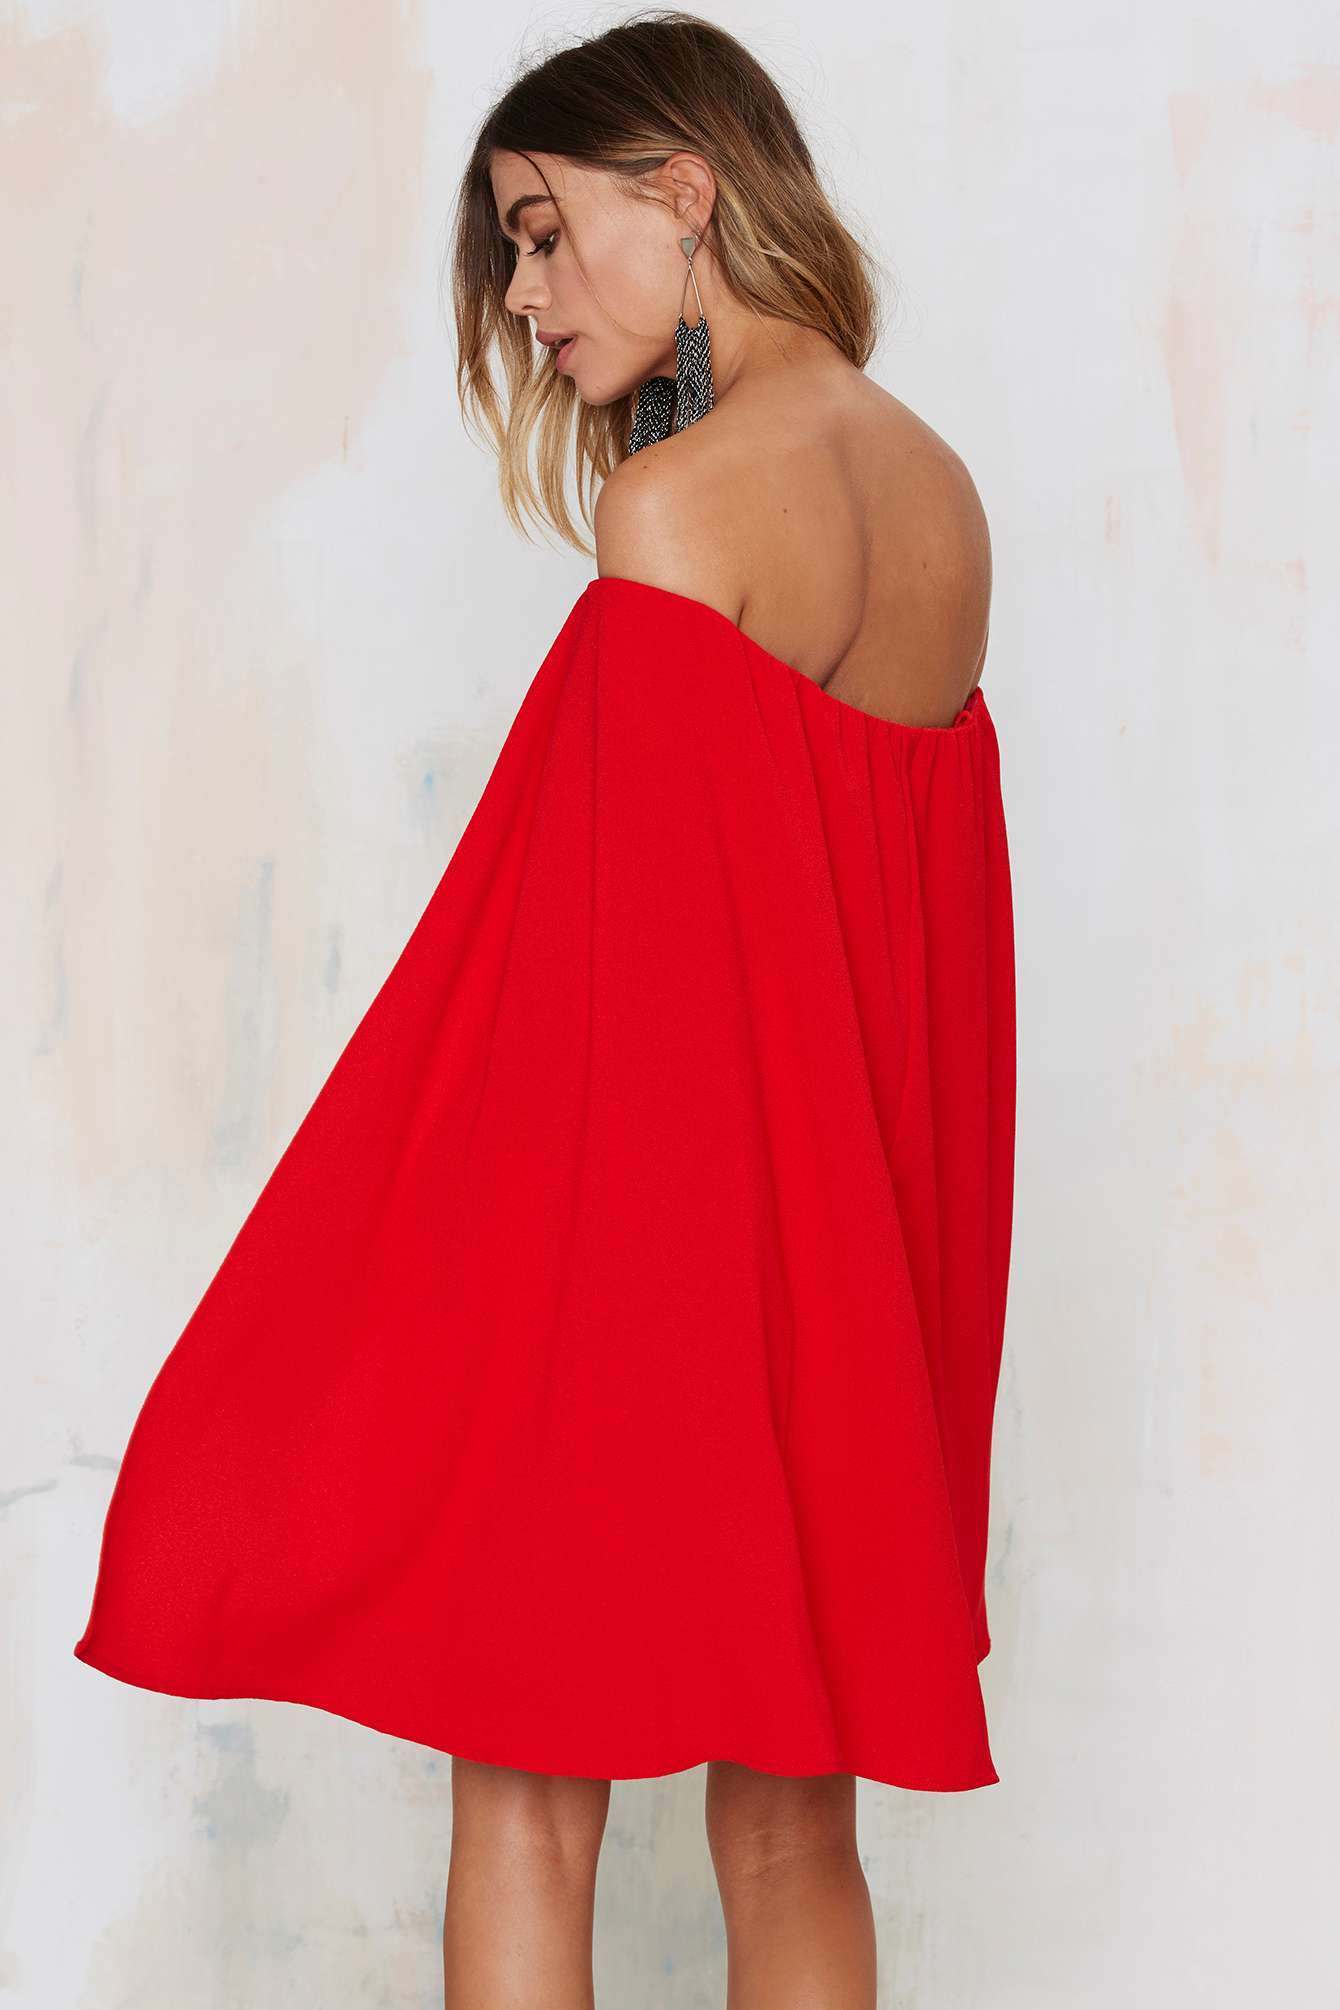 a52212be26c7 Lyst - Nasty Gal Sweetest Cape Off-the-shoulder Dress in Red